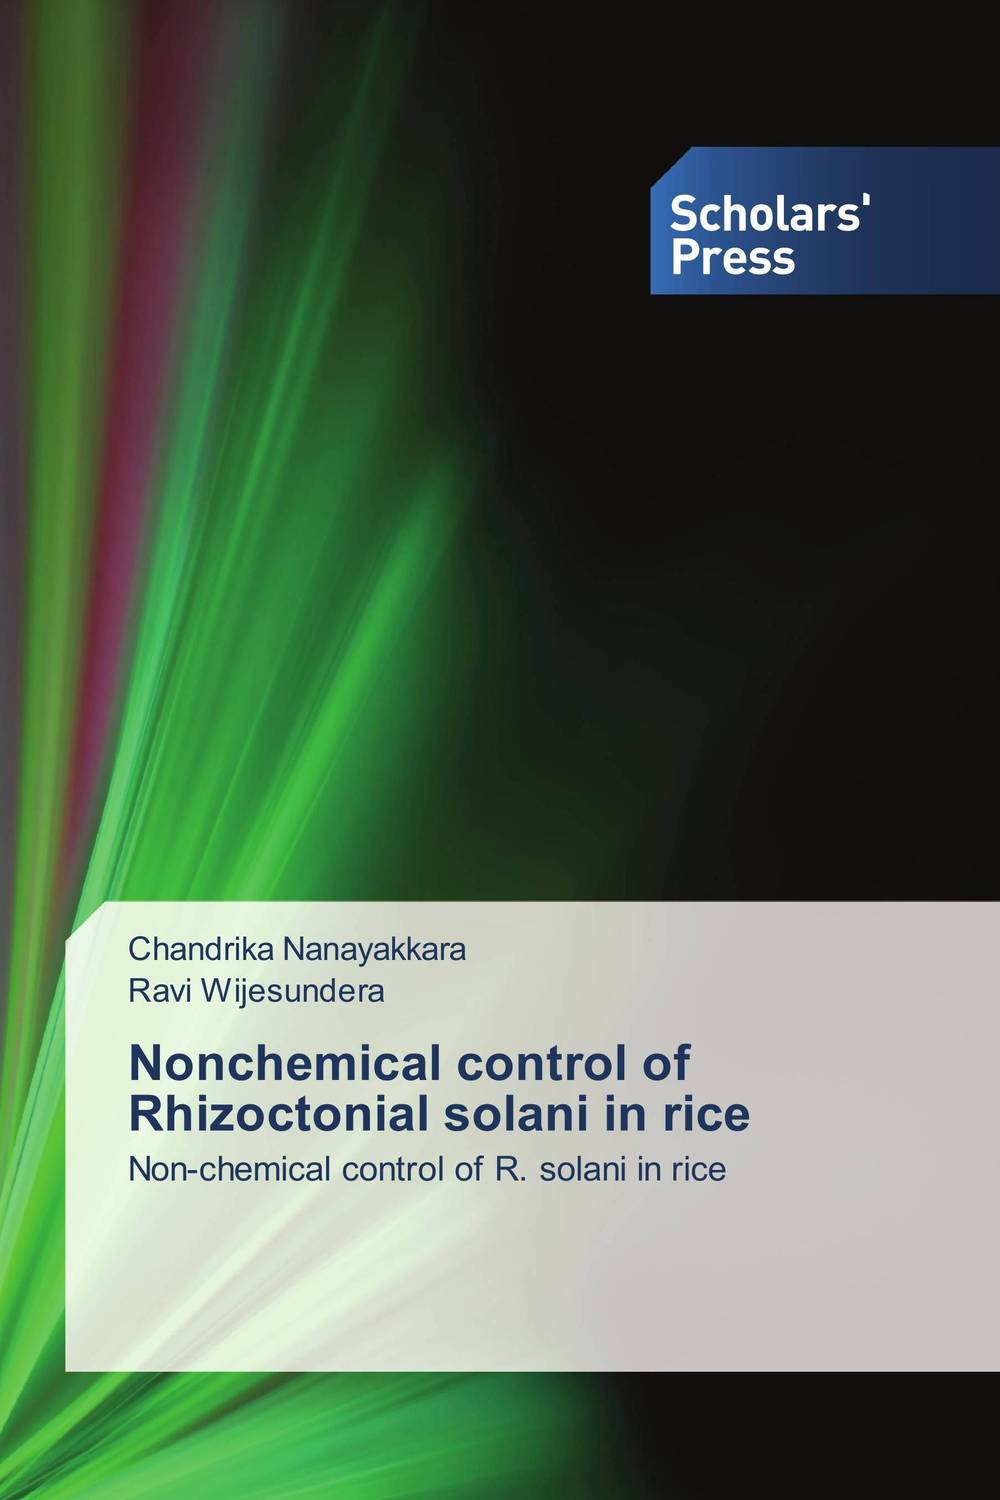 Nonchemical control of Rhizoctonial solani in rice violet ugrat ways to heaven colonization of mars i